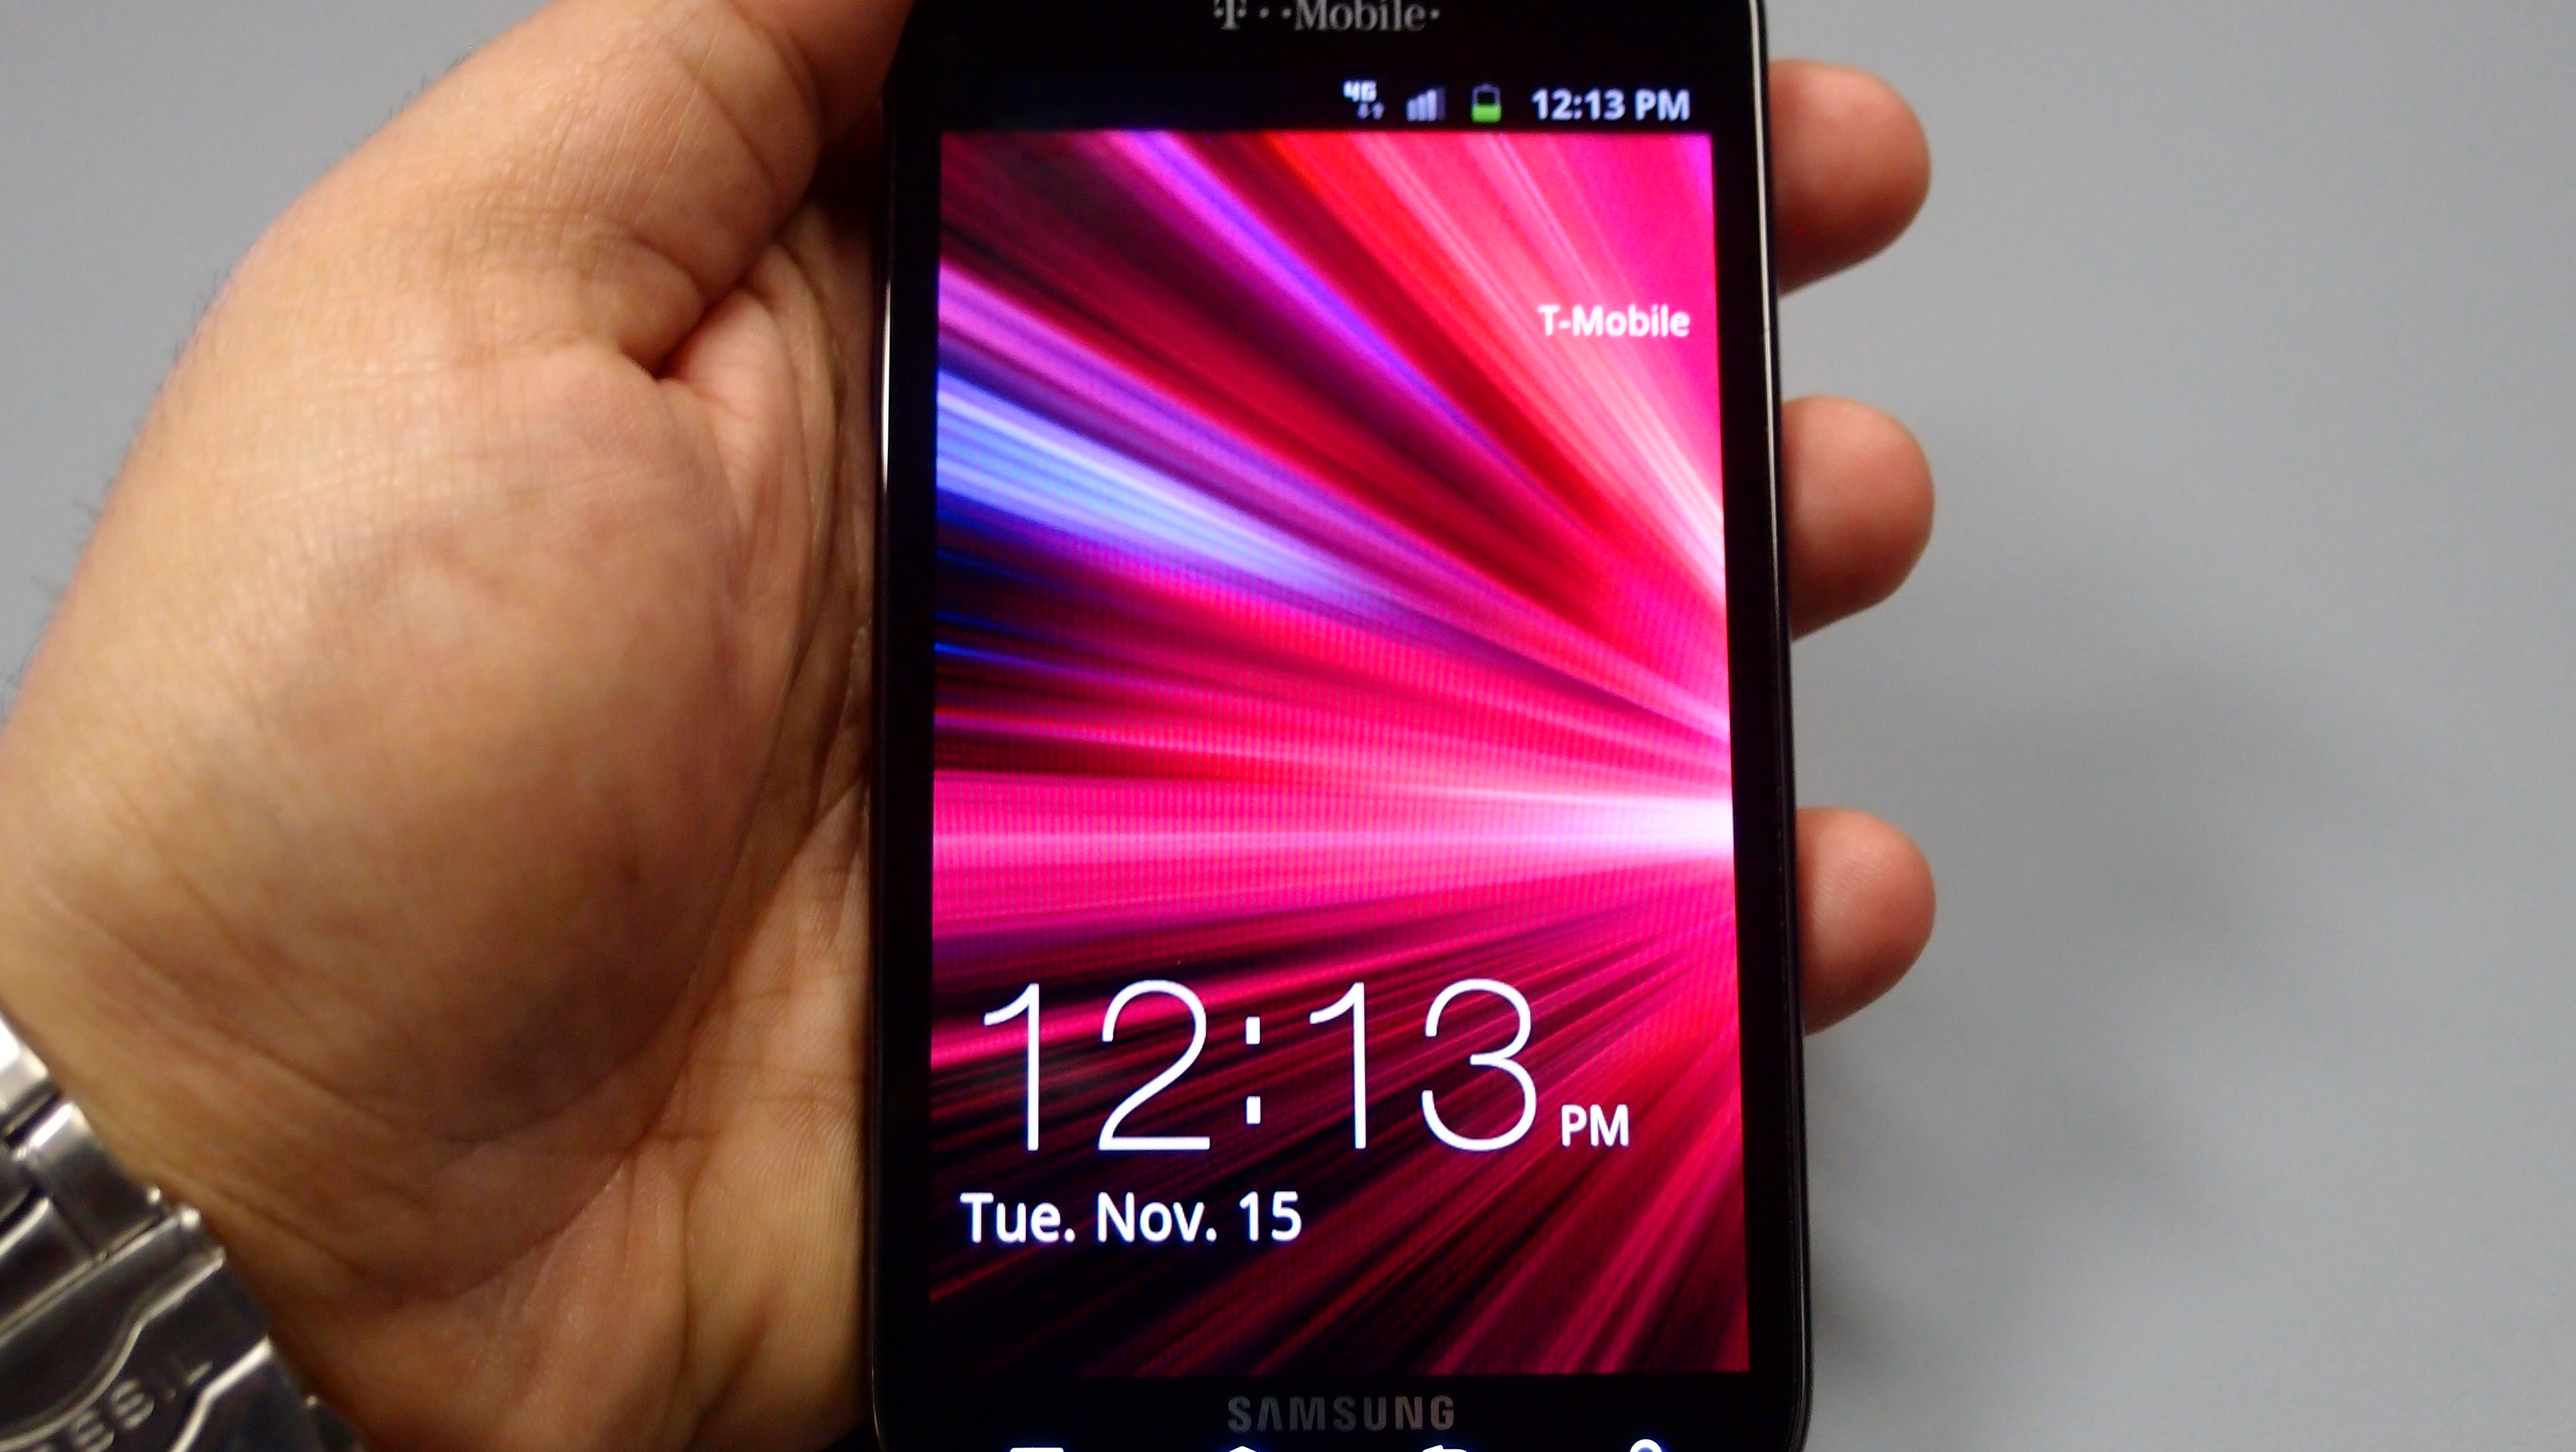 Review: T-Mobile Samsung Galaxy S II